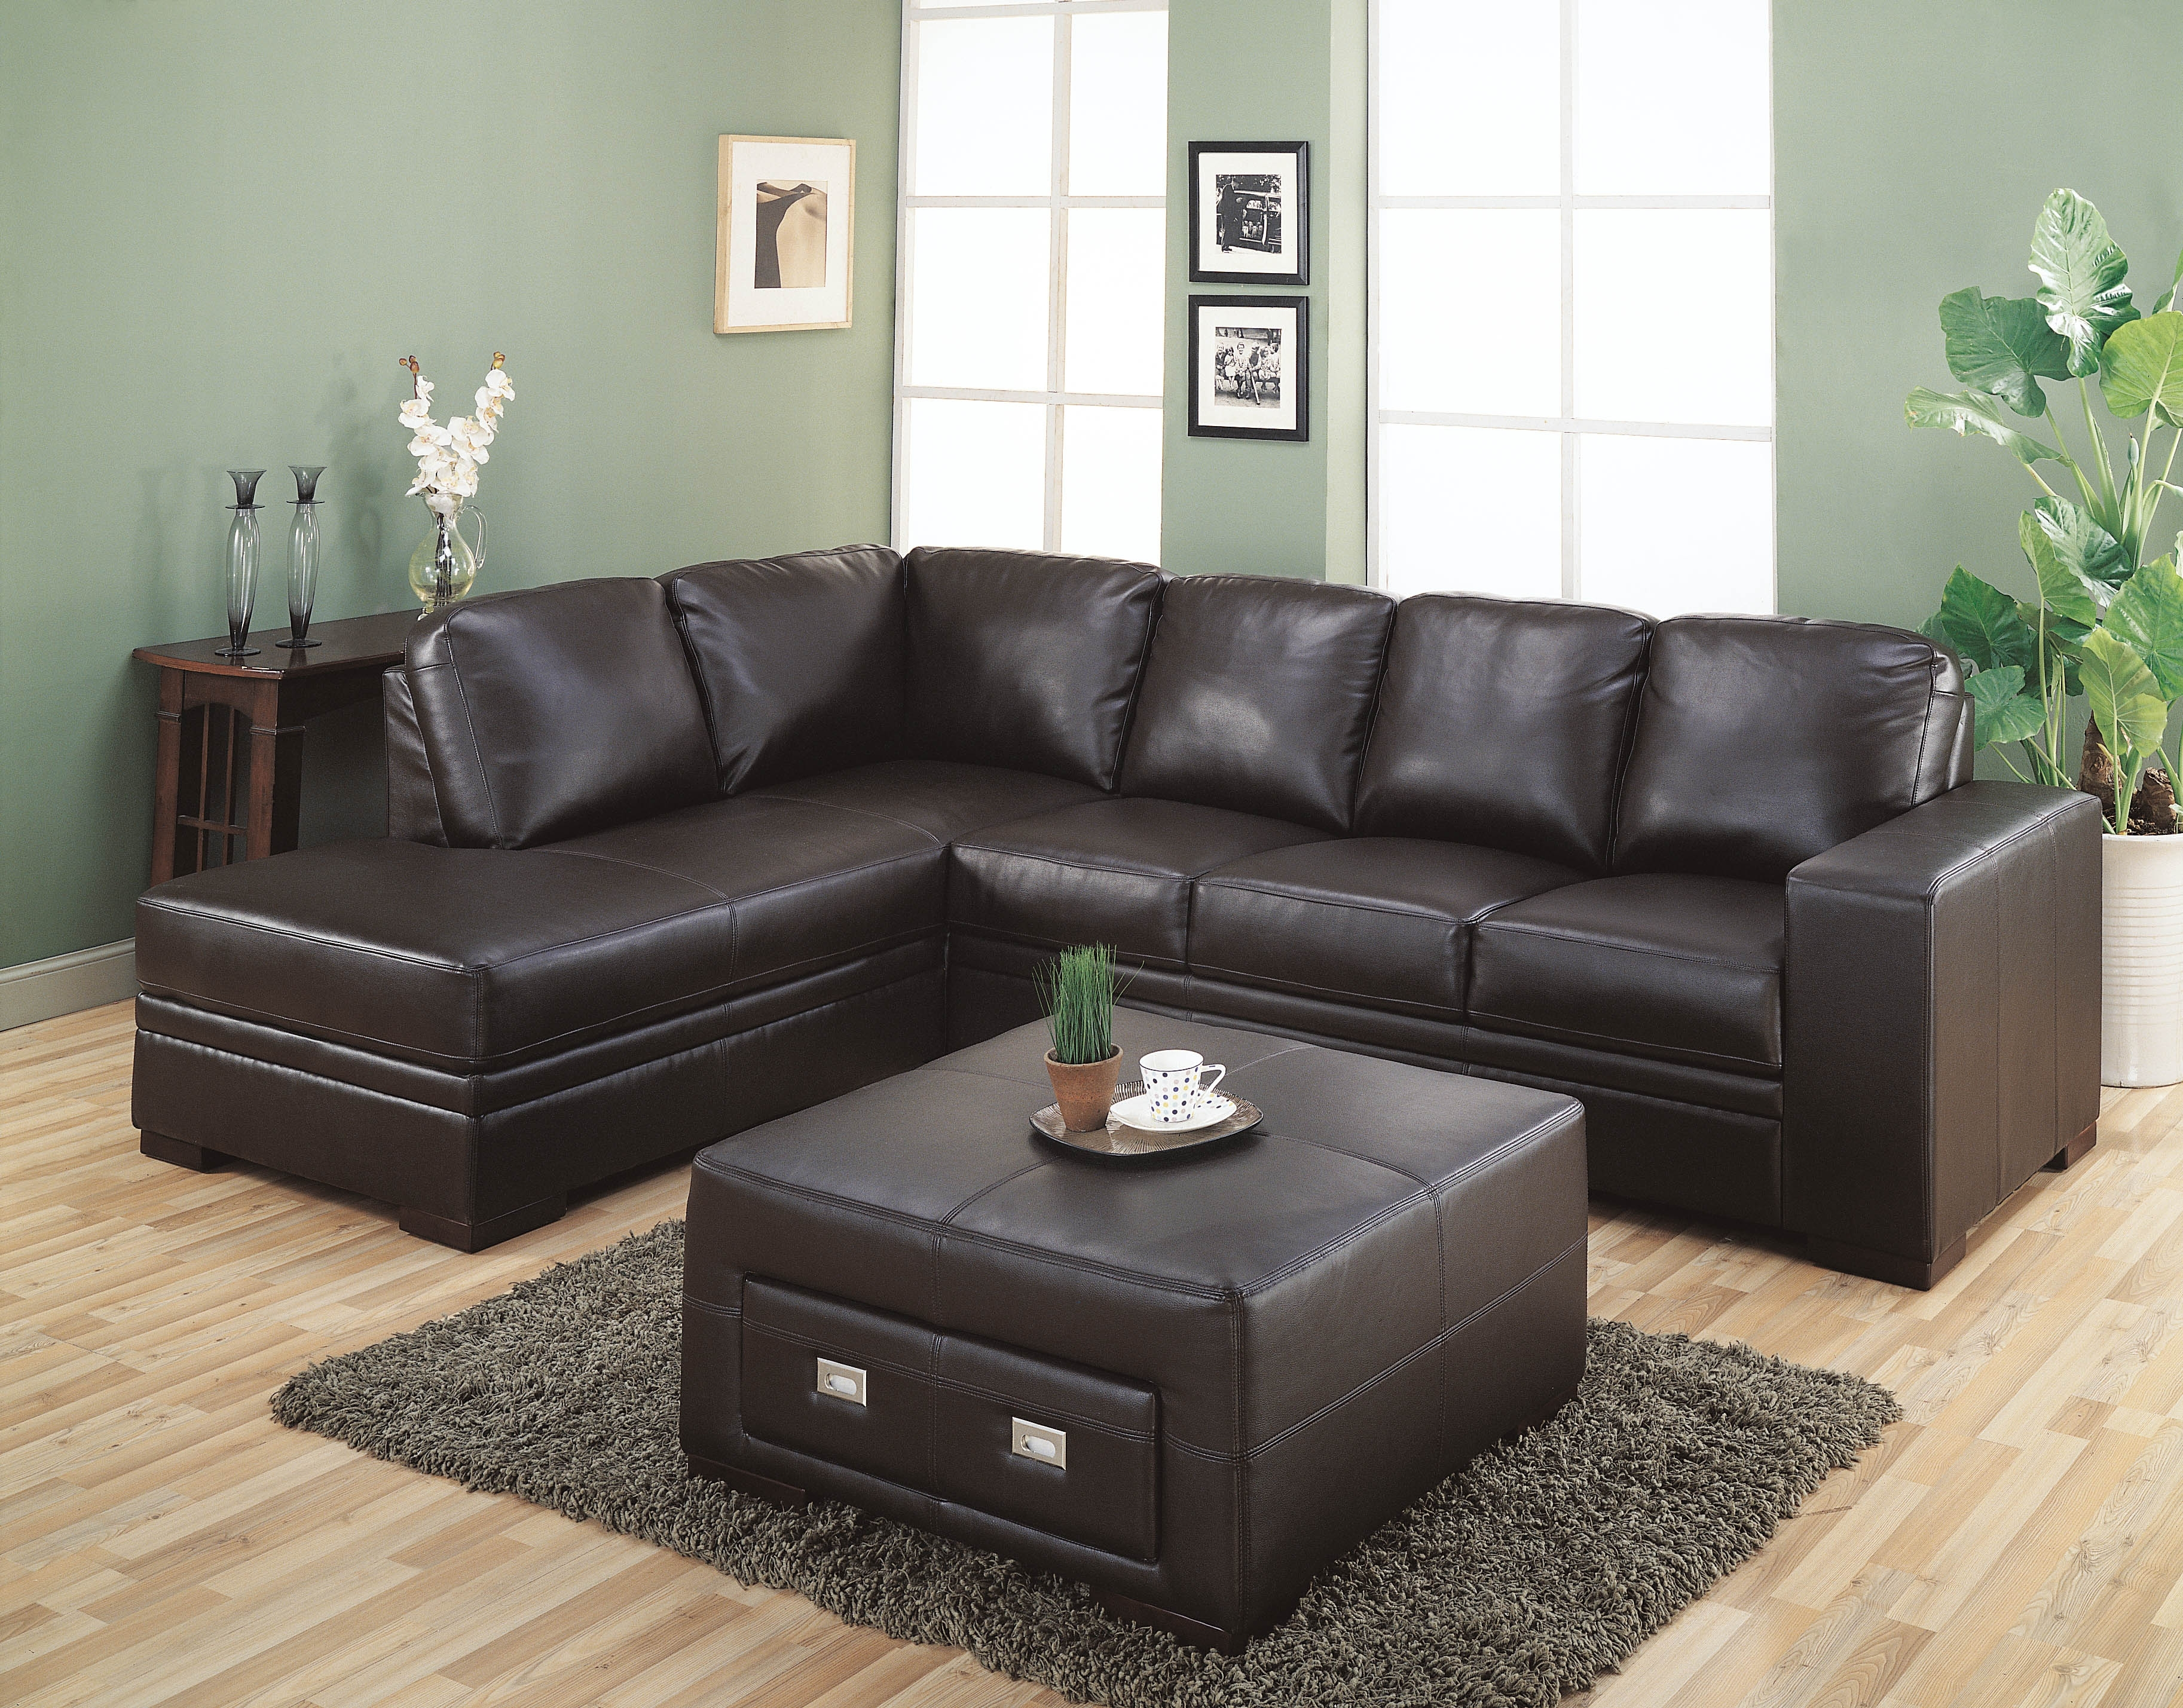 Modern Concept Chocolate Brown Sectional Sofa With Monarch Chocolate Inside Chocolate Brown Sectional Sofas (View 7 of 10)